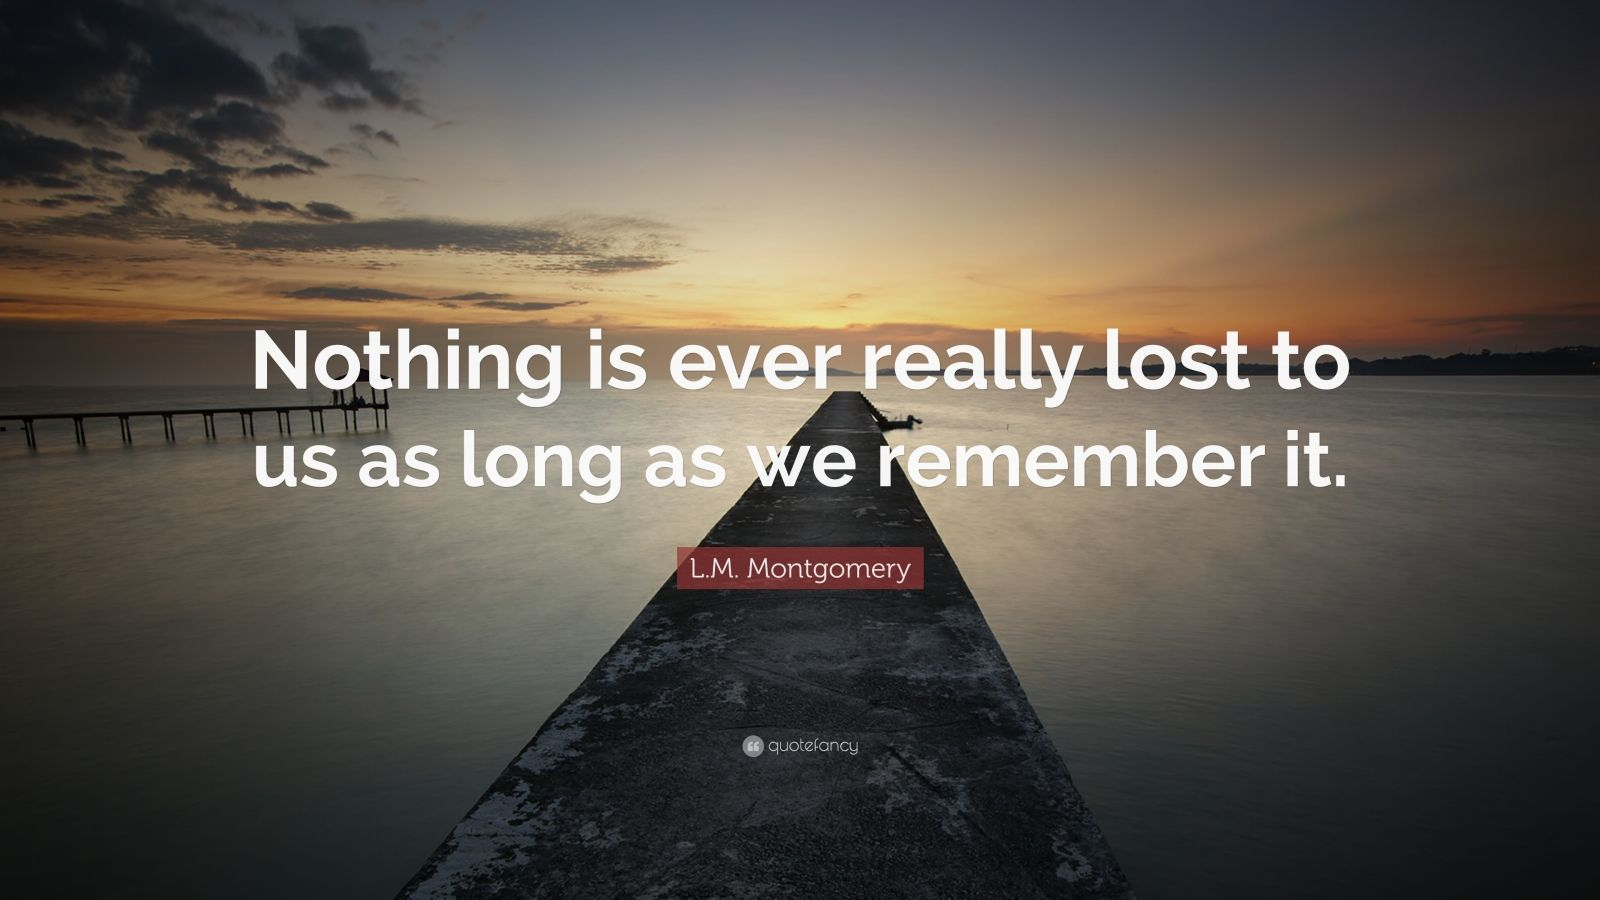 """L.M. Montgomery Quote: """"Nothing is ever really lost to us as long as we remember it."""""""